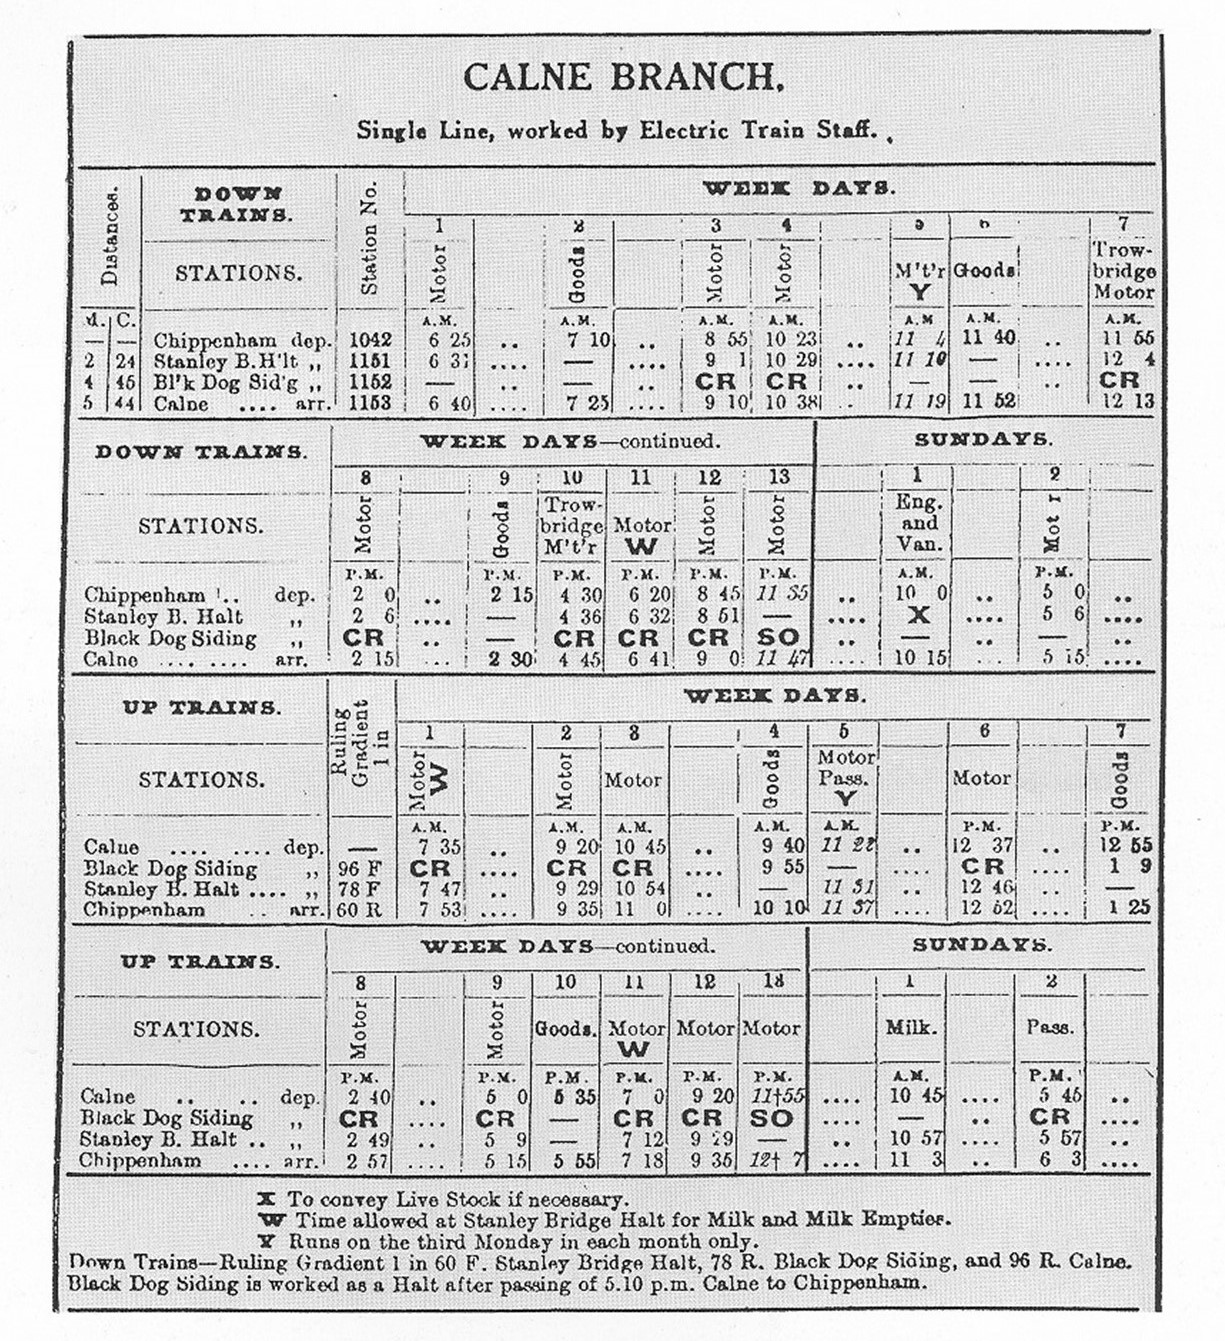 Printed timetable of Calne Branch Line showing times for down trains and up trains for stations Chippenham, Stanley Bridge Halt, Black Dog and Calne. Weekdays and Sundays. Indicators for trains conveying livestock and time allowed at Standley Bridge Halt for Milk and Milk Emptier